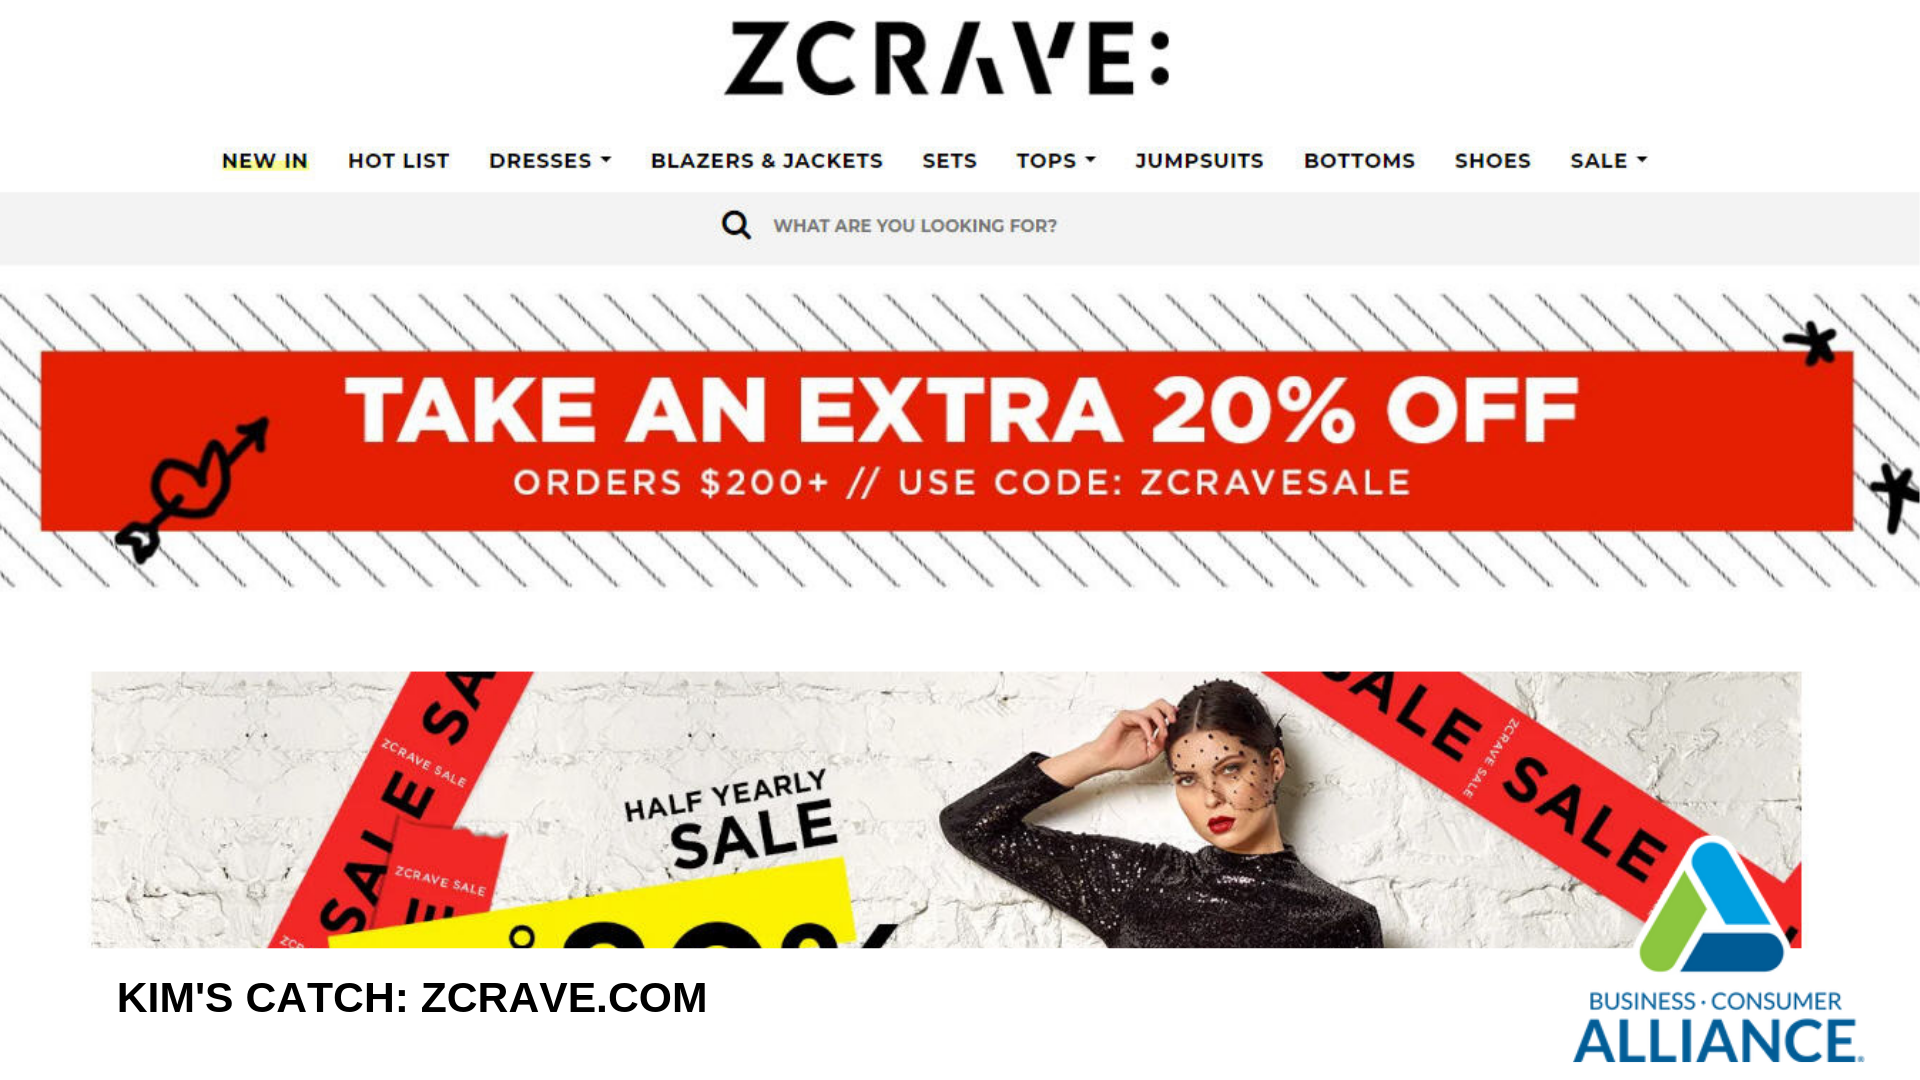 Kim's Catch:  Zcrave.com